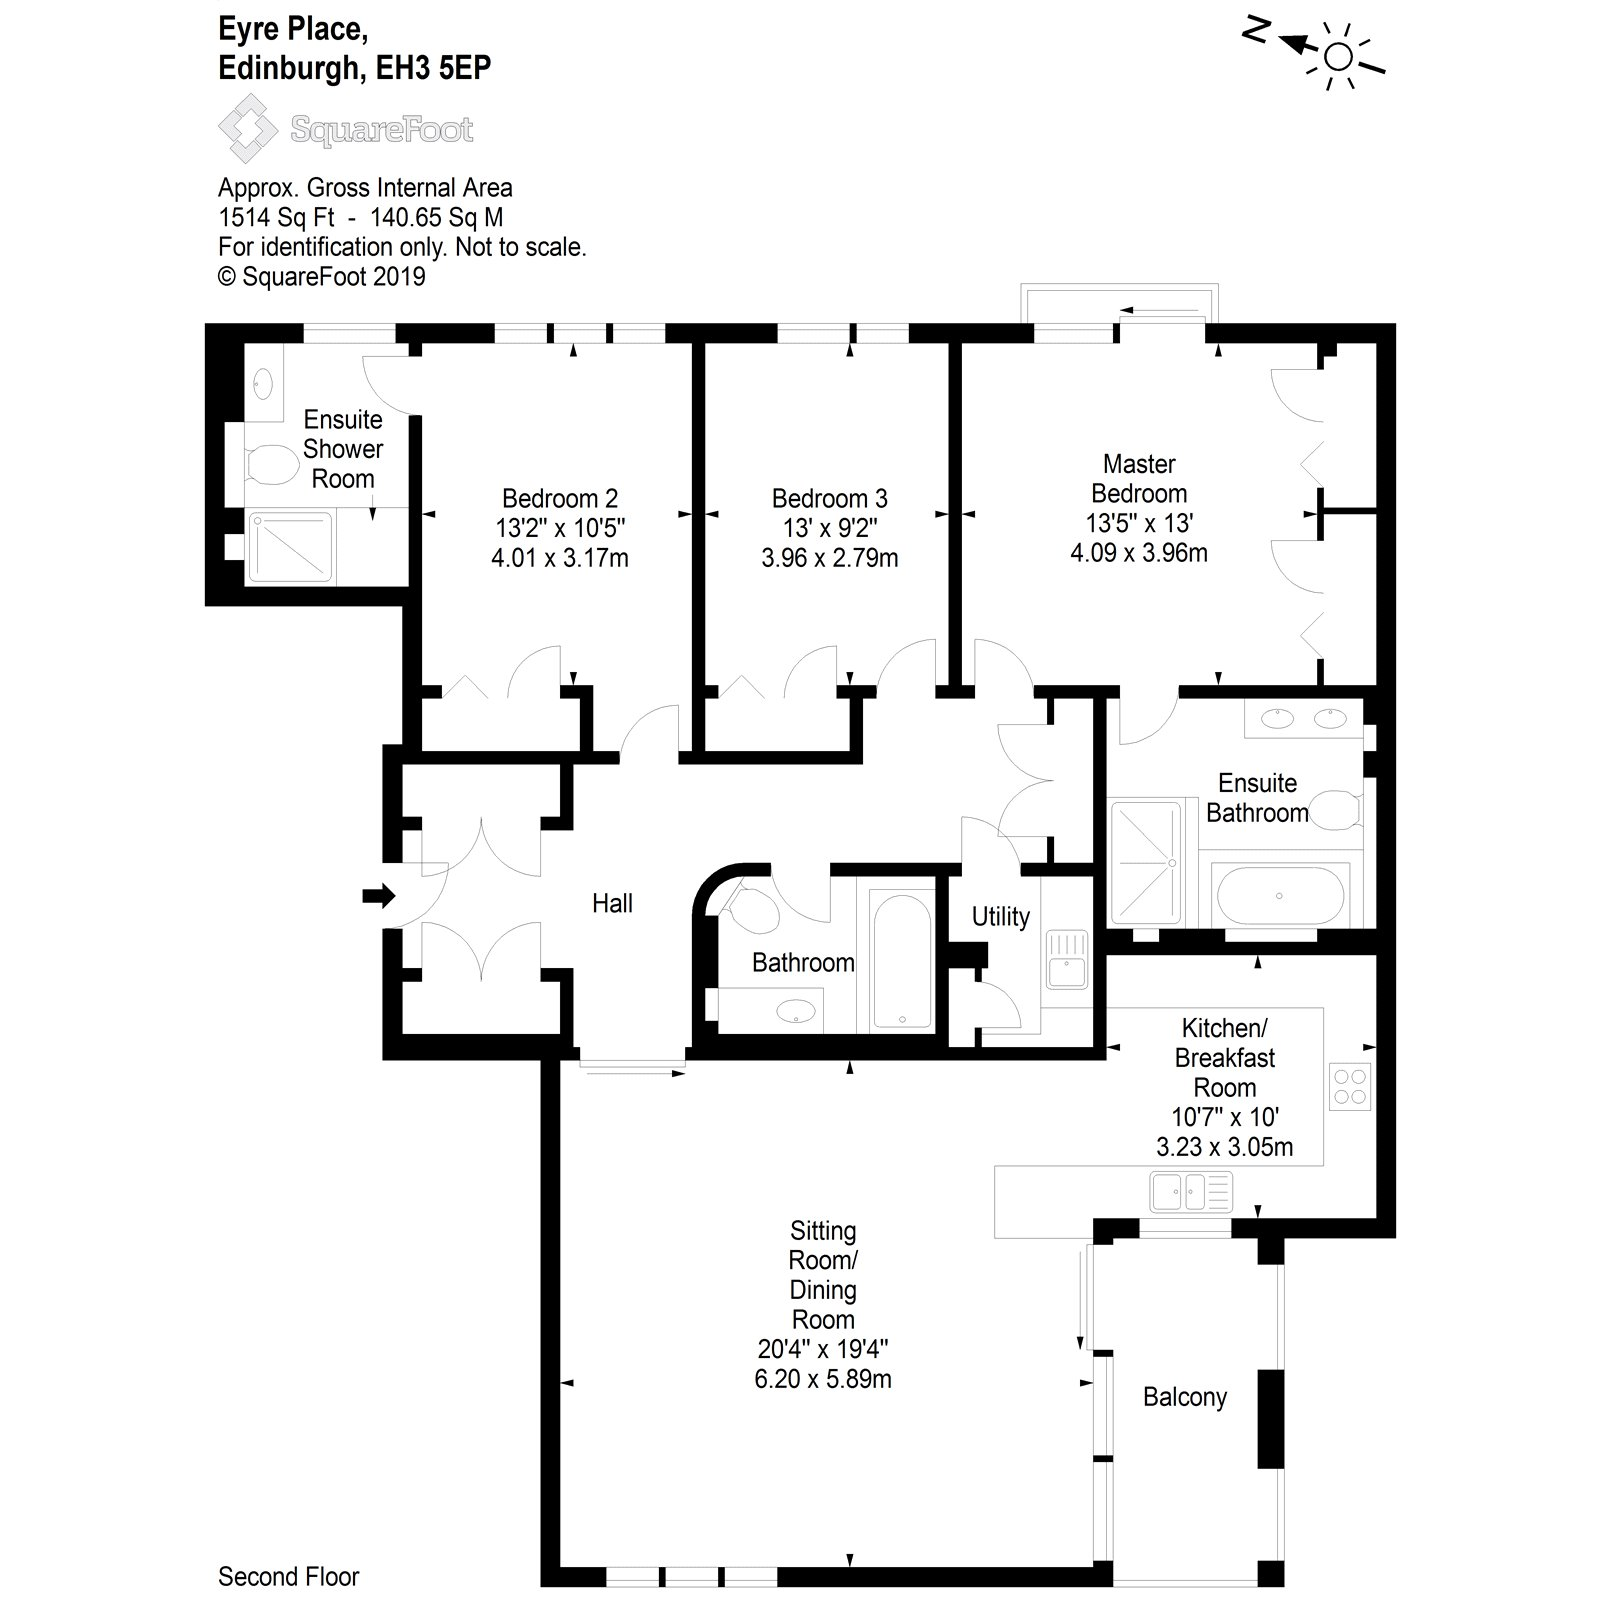 Floorplans for Eyre Place, Edinburgh, EH3